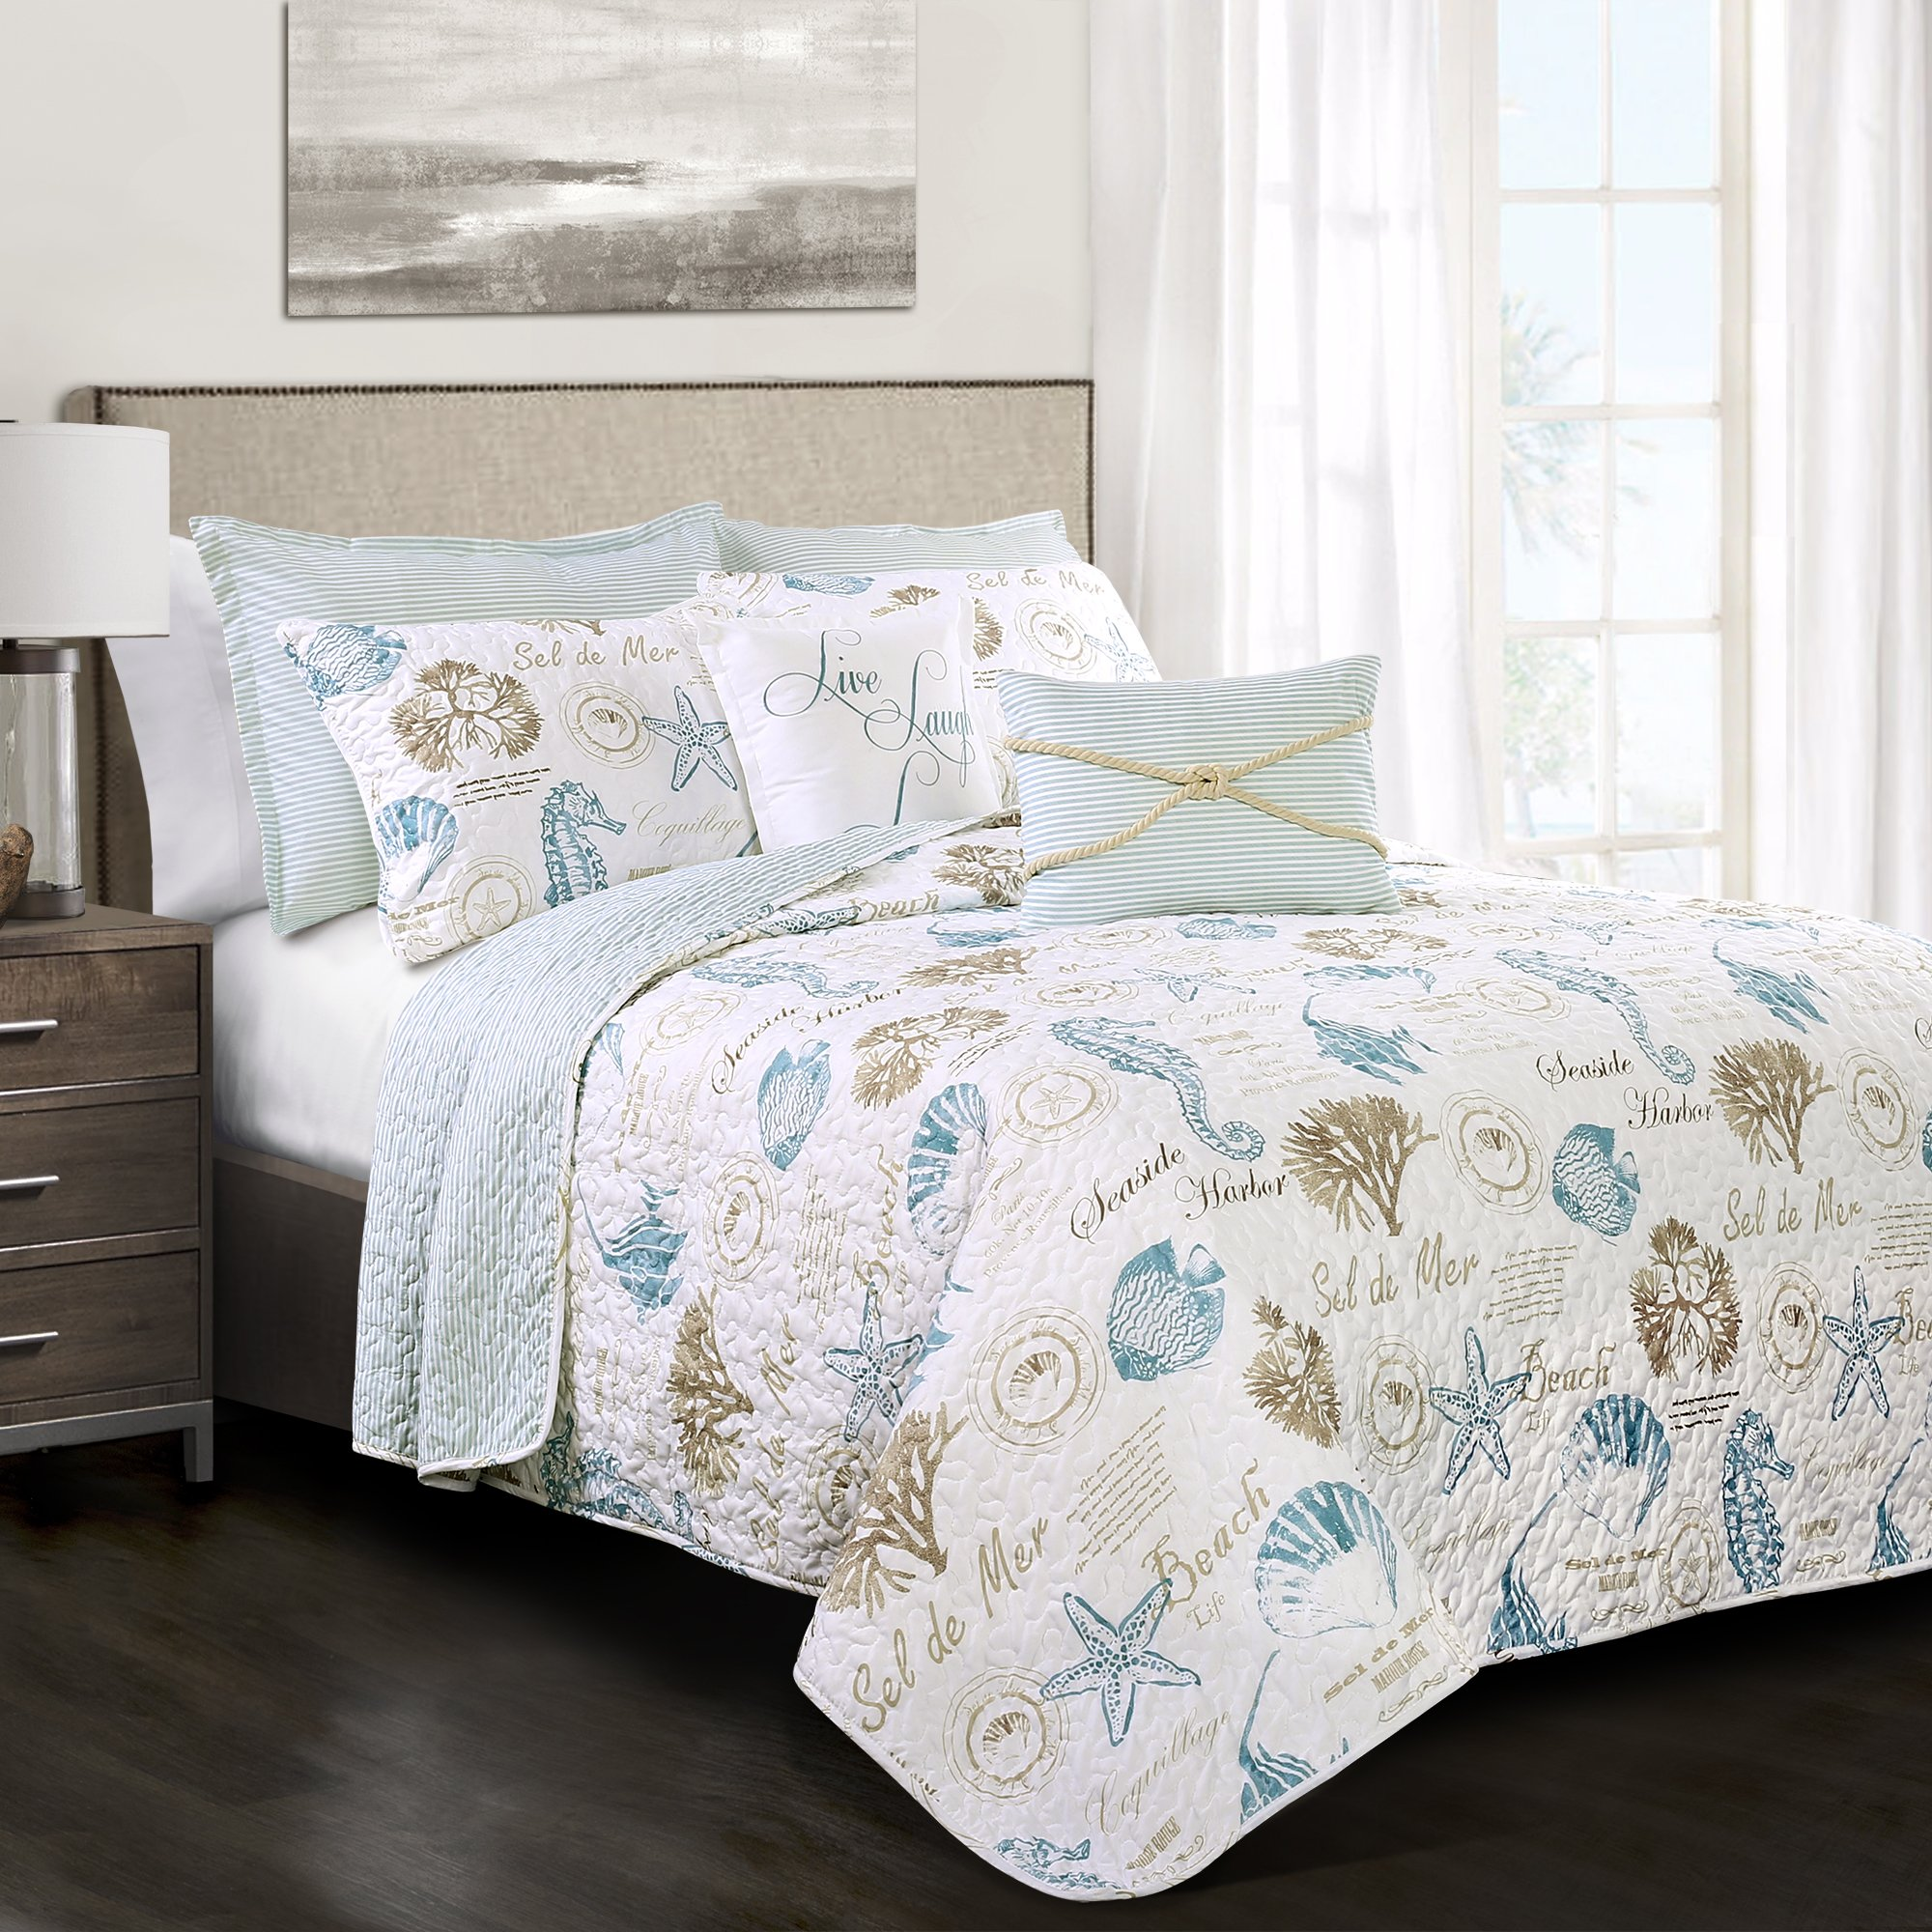 Lush Decor 7 Piece Harbor Life 7 Quilt Set, King, Blue and Taupe